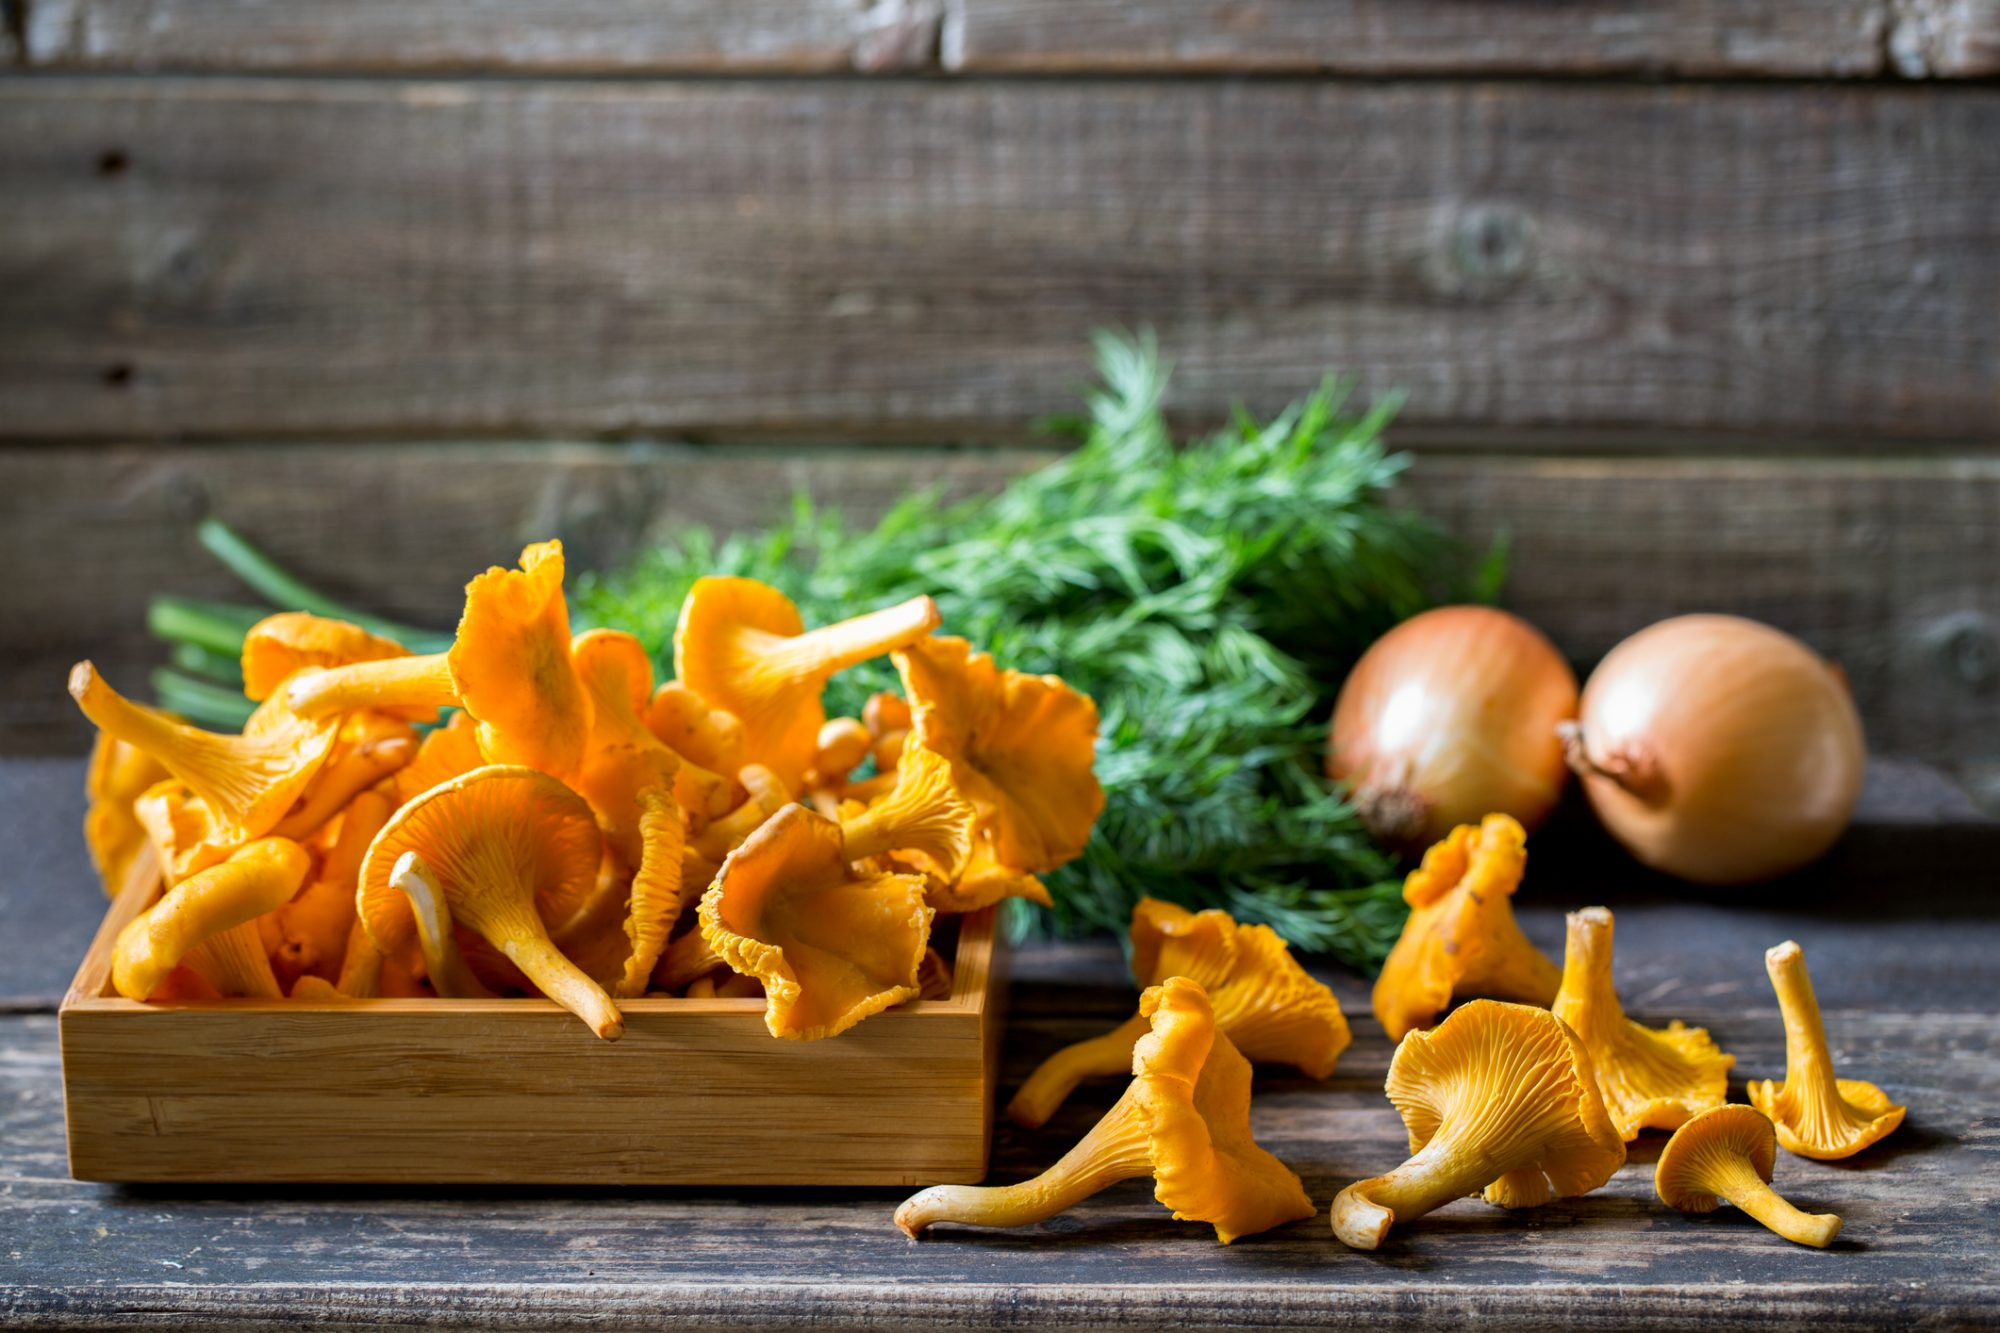 Fresh chanterelle mushrooms on rustic table with onions and dill